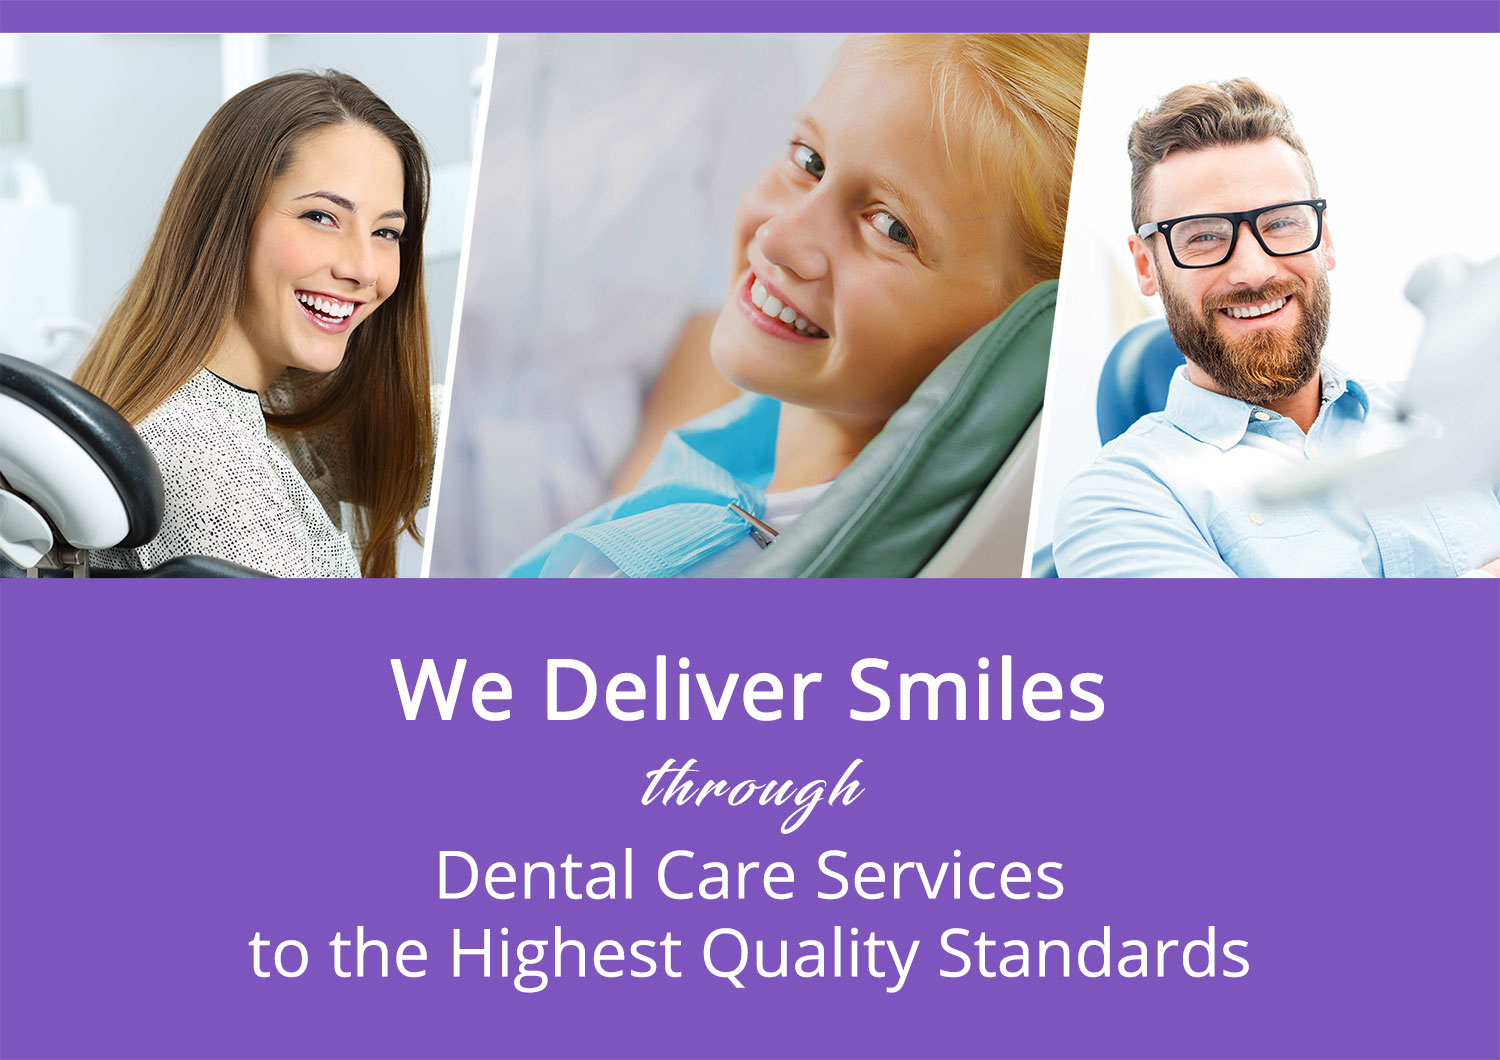 We Deliver Smiles - Diana Smile Dental Clinic